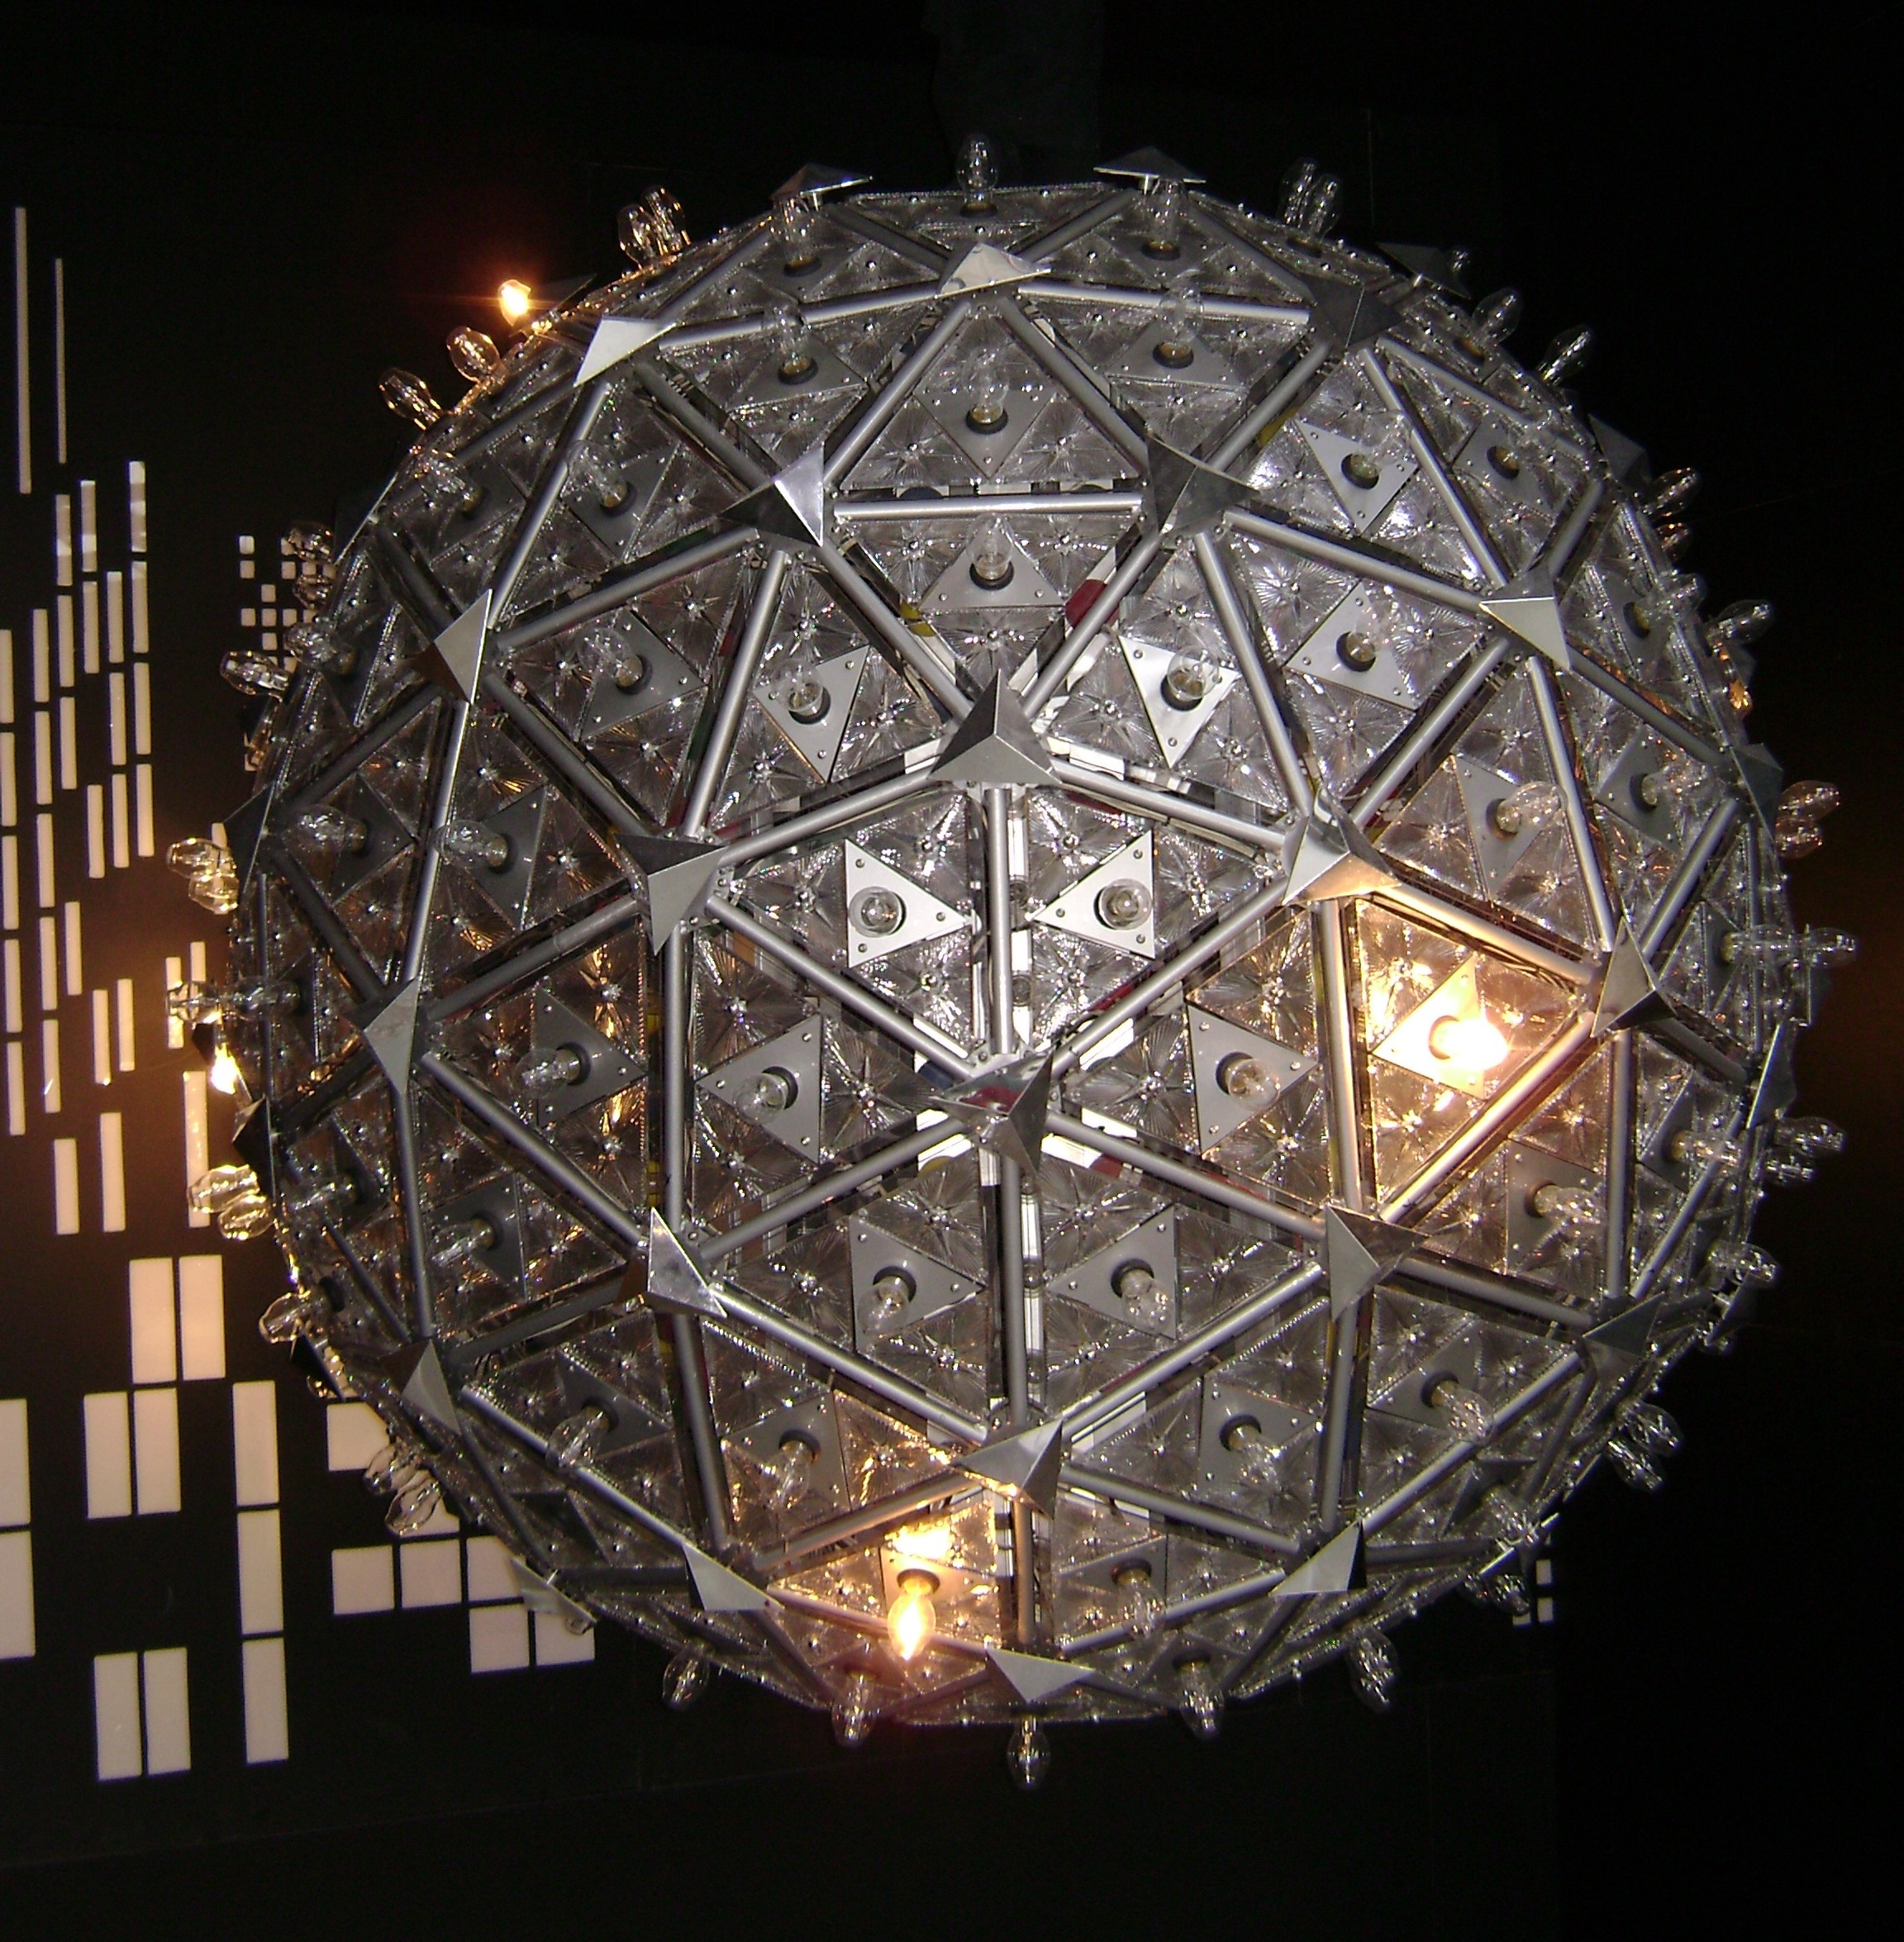 2000 Times Square Ball at Waterford  -From Wikipedia, the free encyclopedia